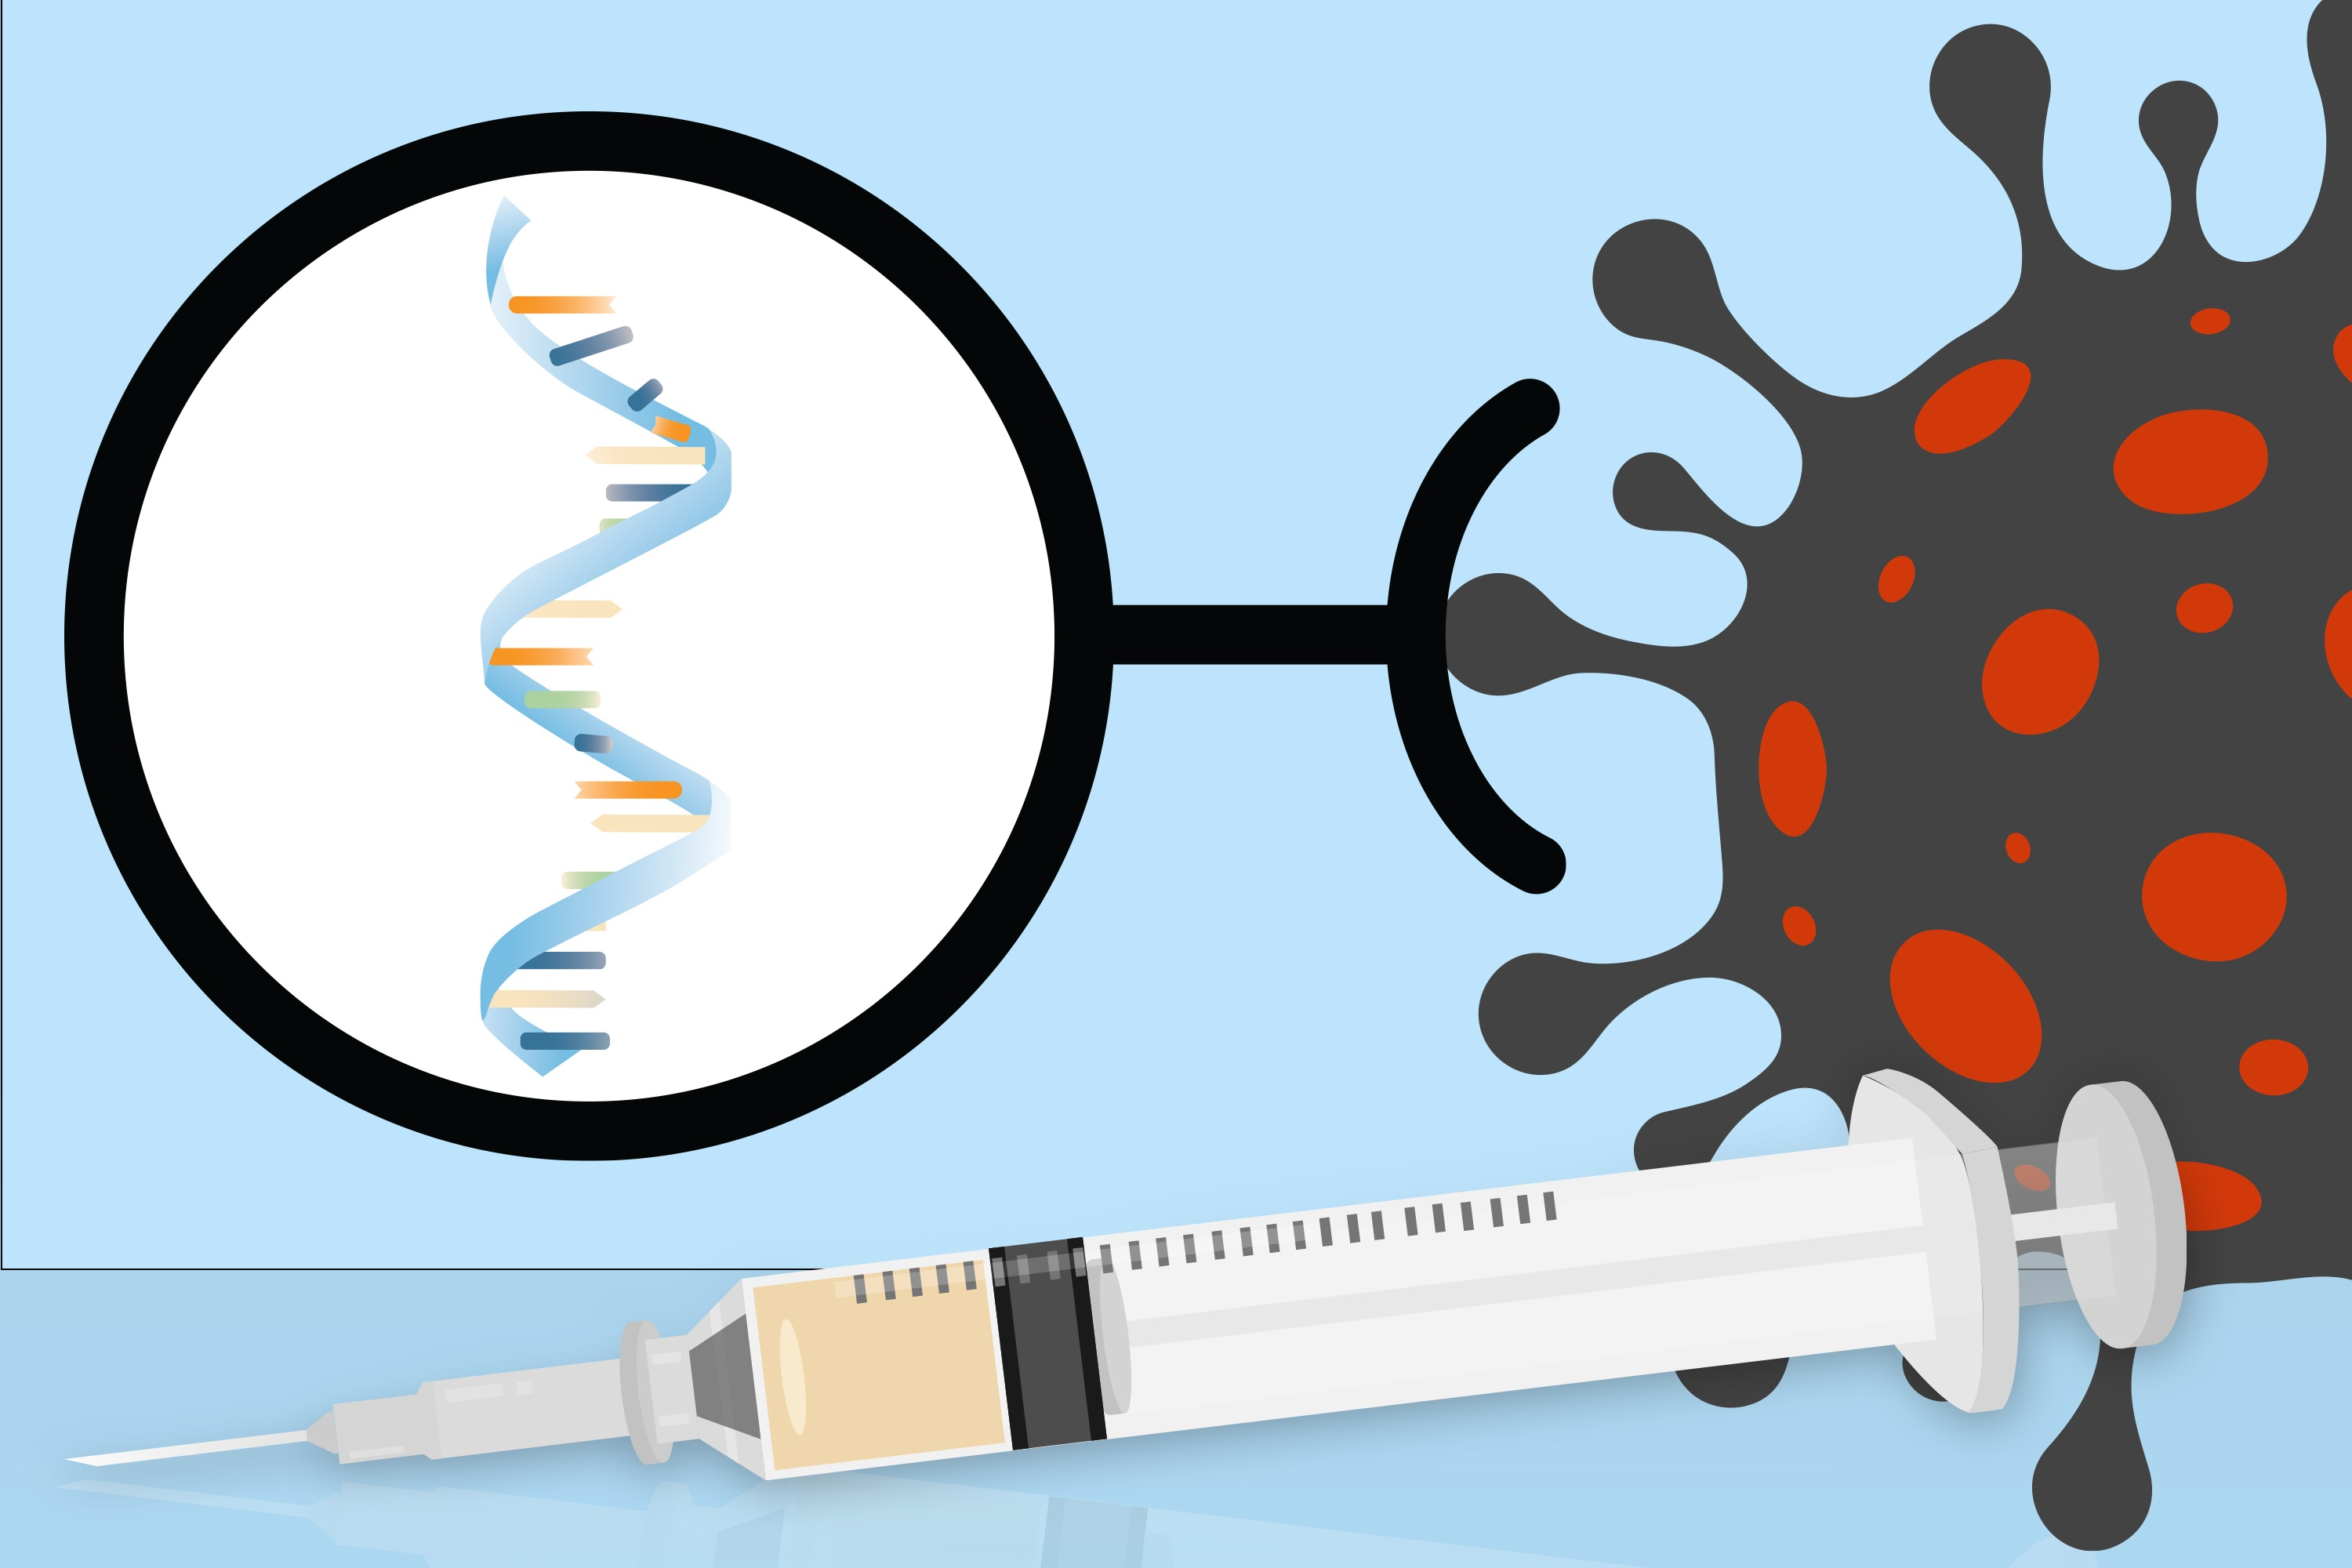 All about the Delta Variant - mRNA Vaccines